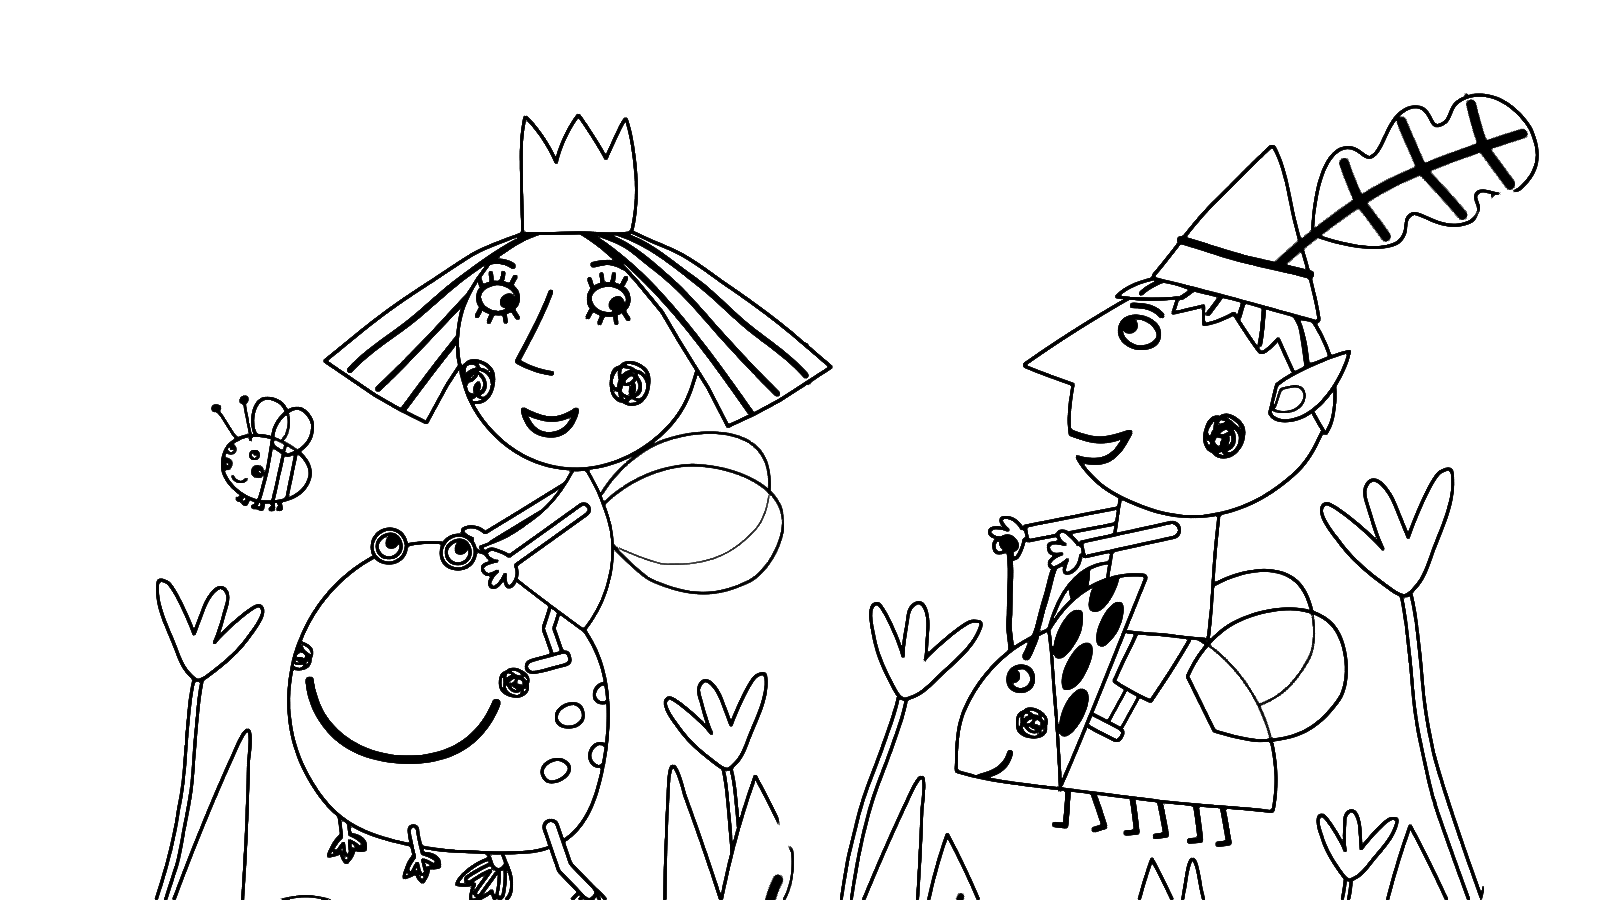 ben and holly coloring pages pdf il piccolo regno di ben e holly ben e holly in mezzo pages and pdf ben coloring holly